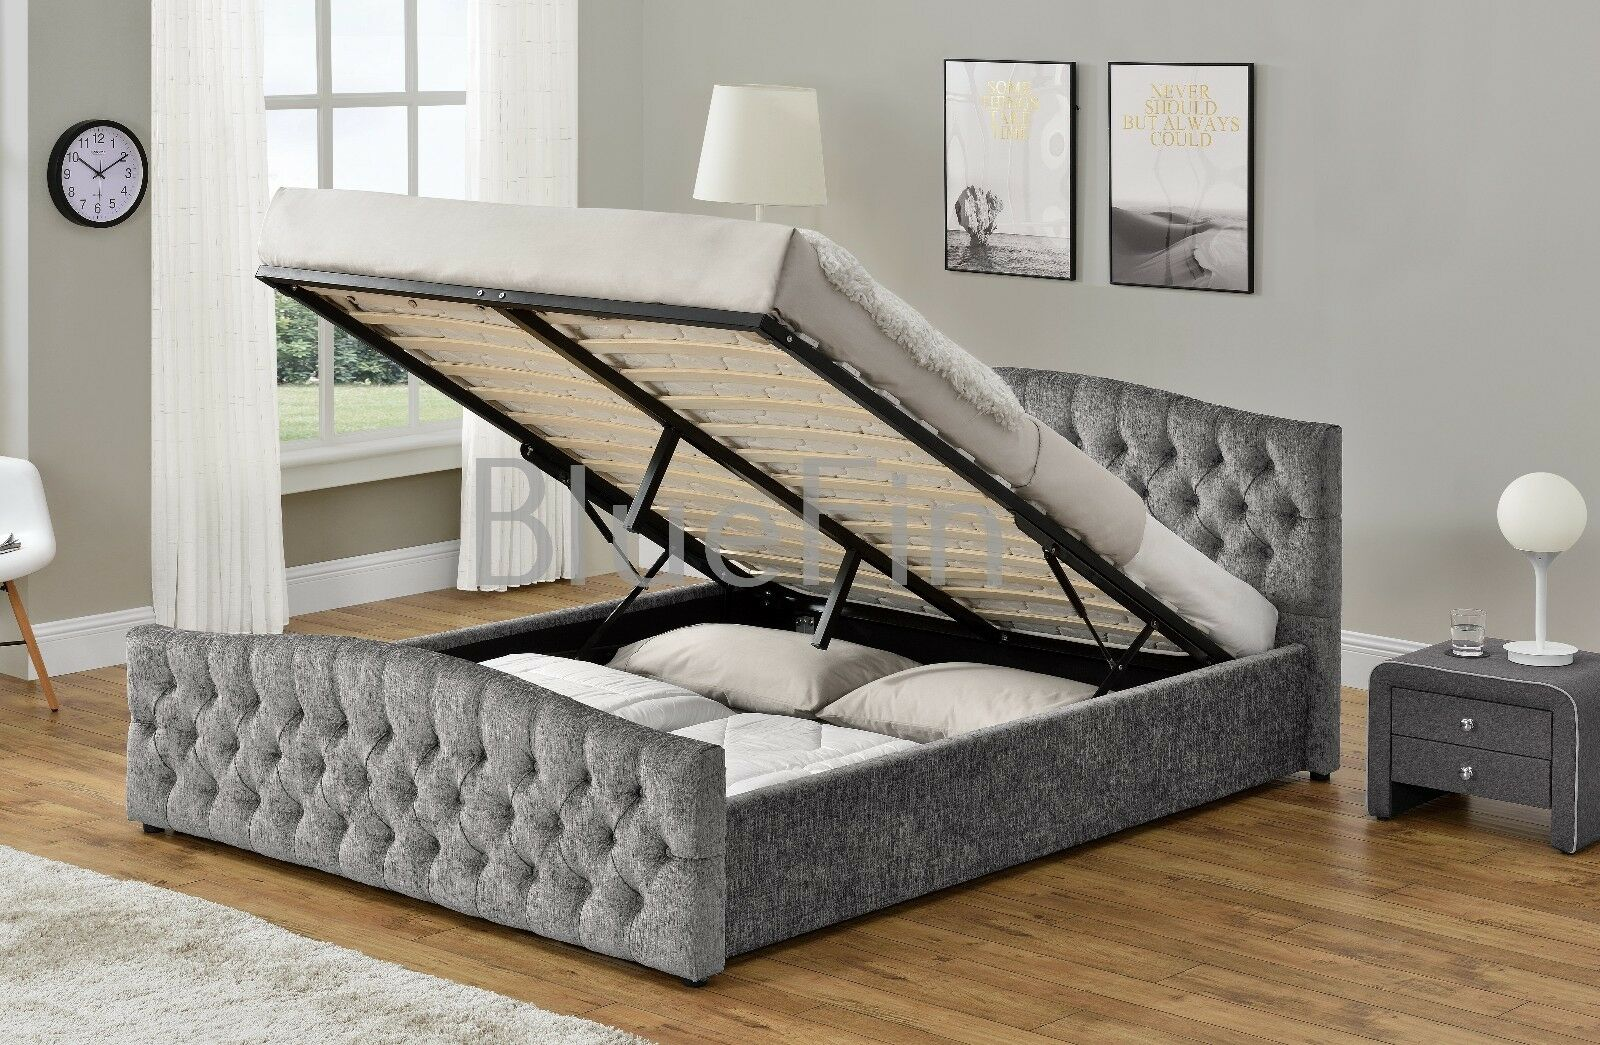 Chesterfield Ottoman Storage Bed In Silver Crush Or Chenille Upholstered Fabric Beds & Mattresses